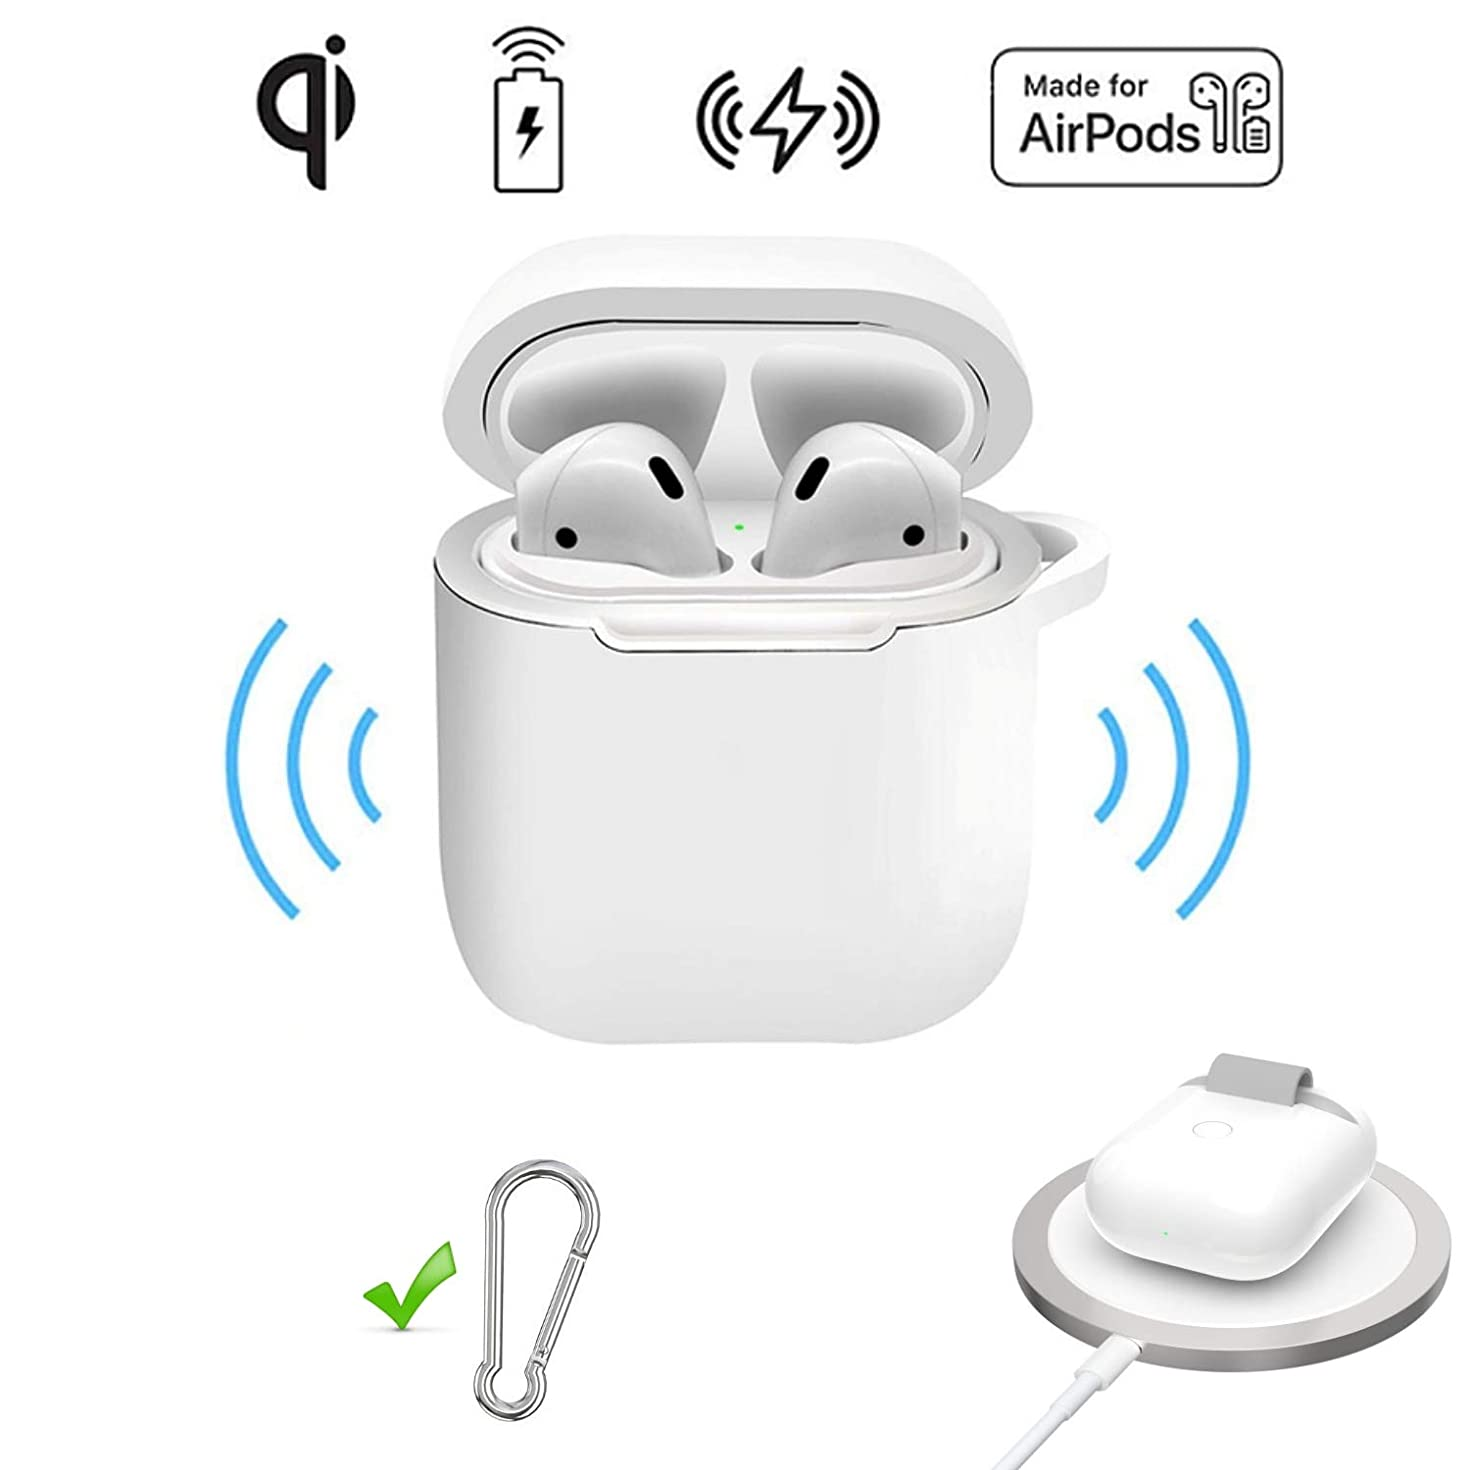 2 in 1 case for Apple Airpods Wireless Charging case and Protective case Compatible with Any Qi Wireless Charger pad, White with Keychain